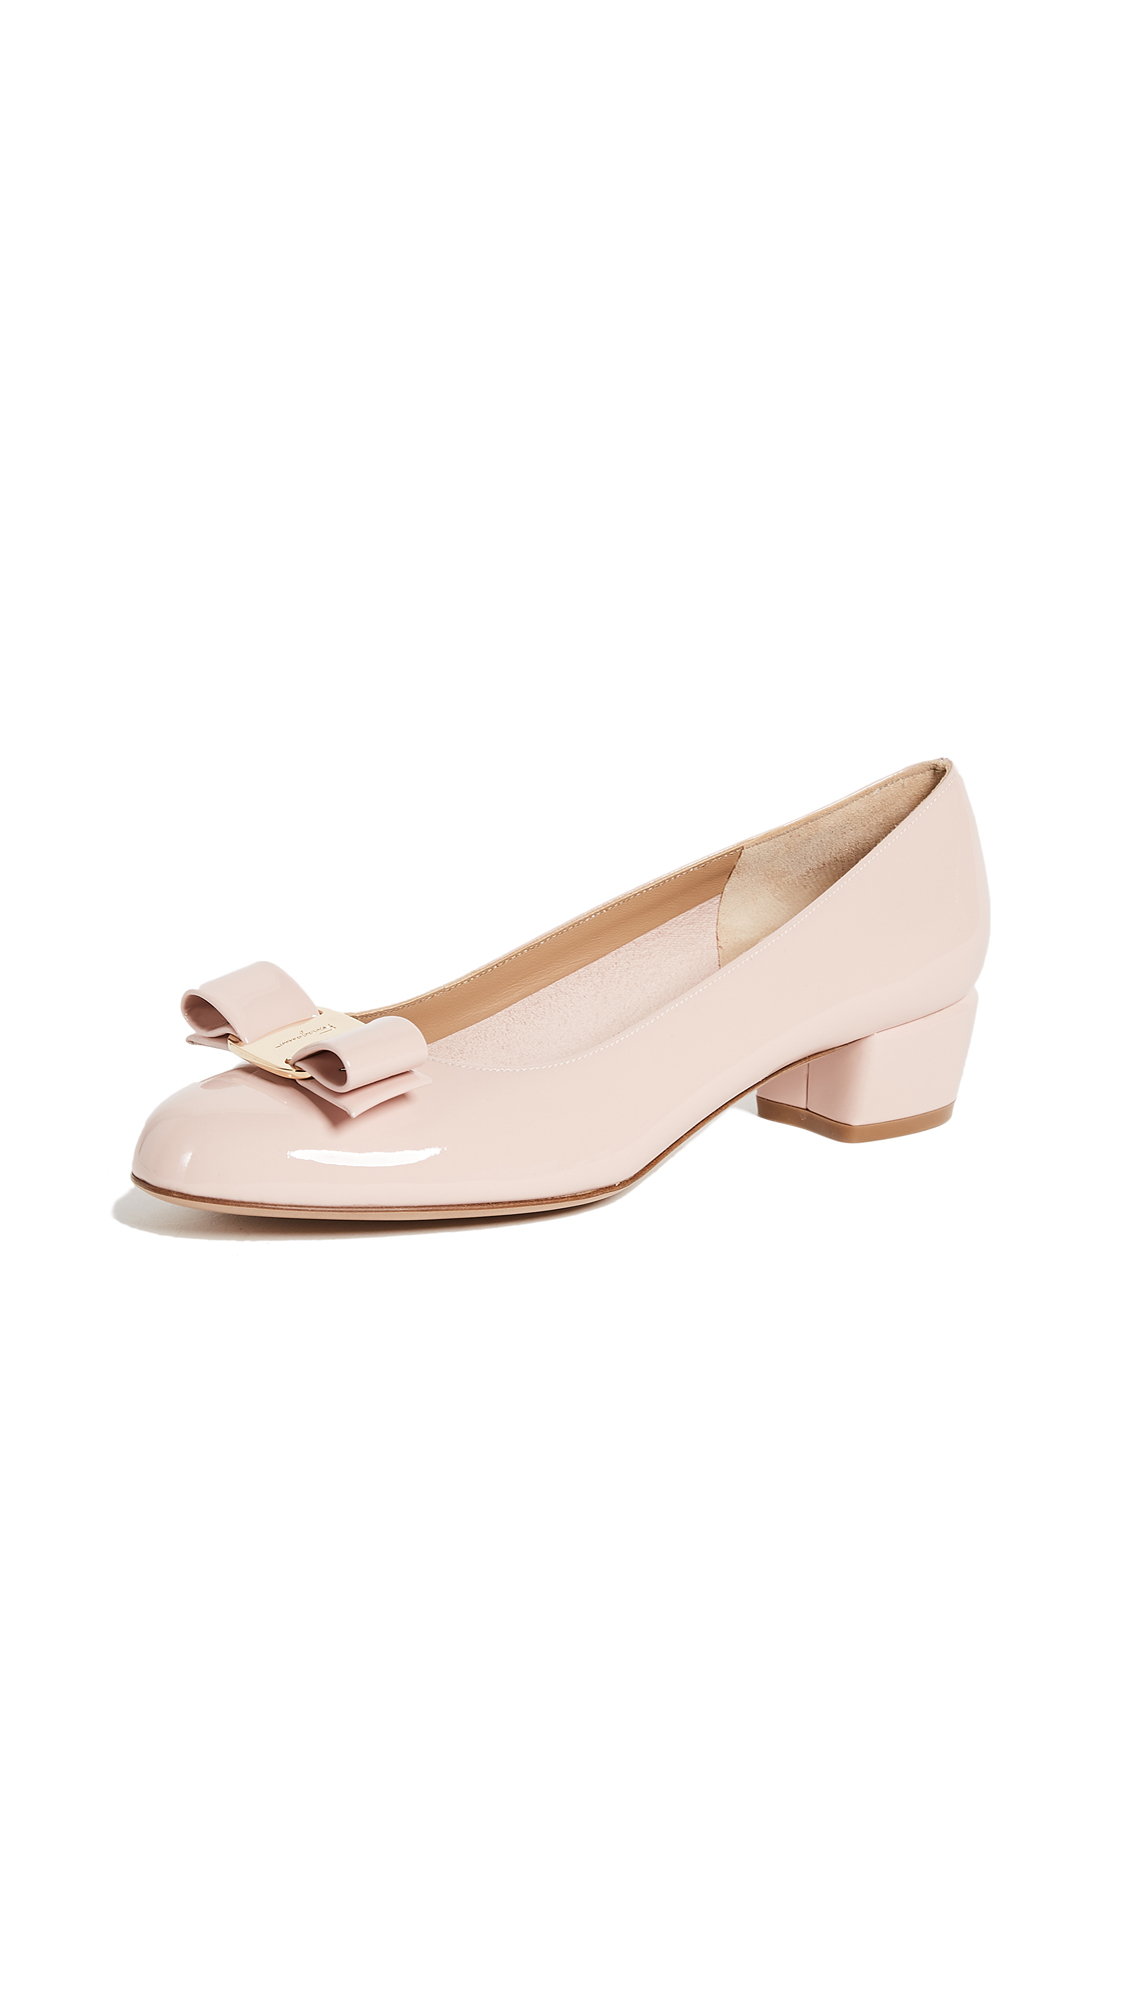 Salvatore Ferragamo Vara Low Heel Pumps - Bon Bon